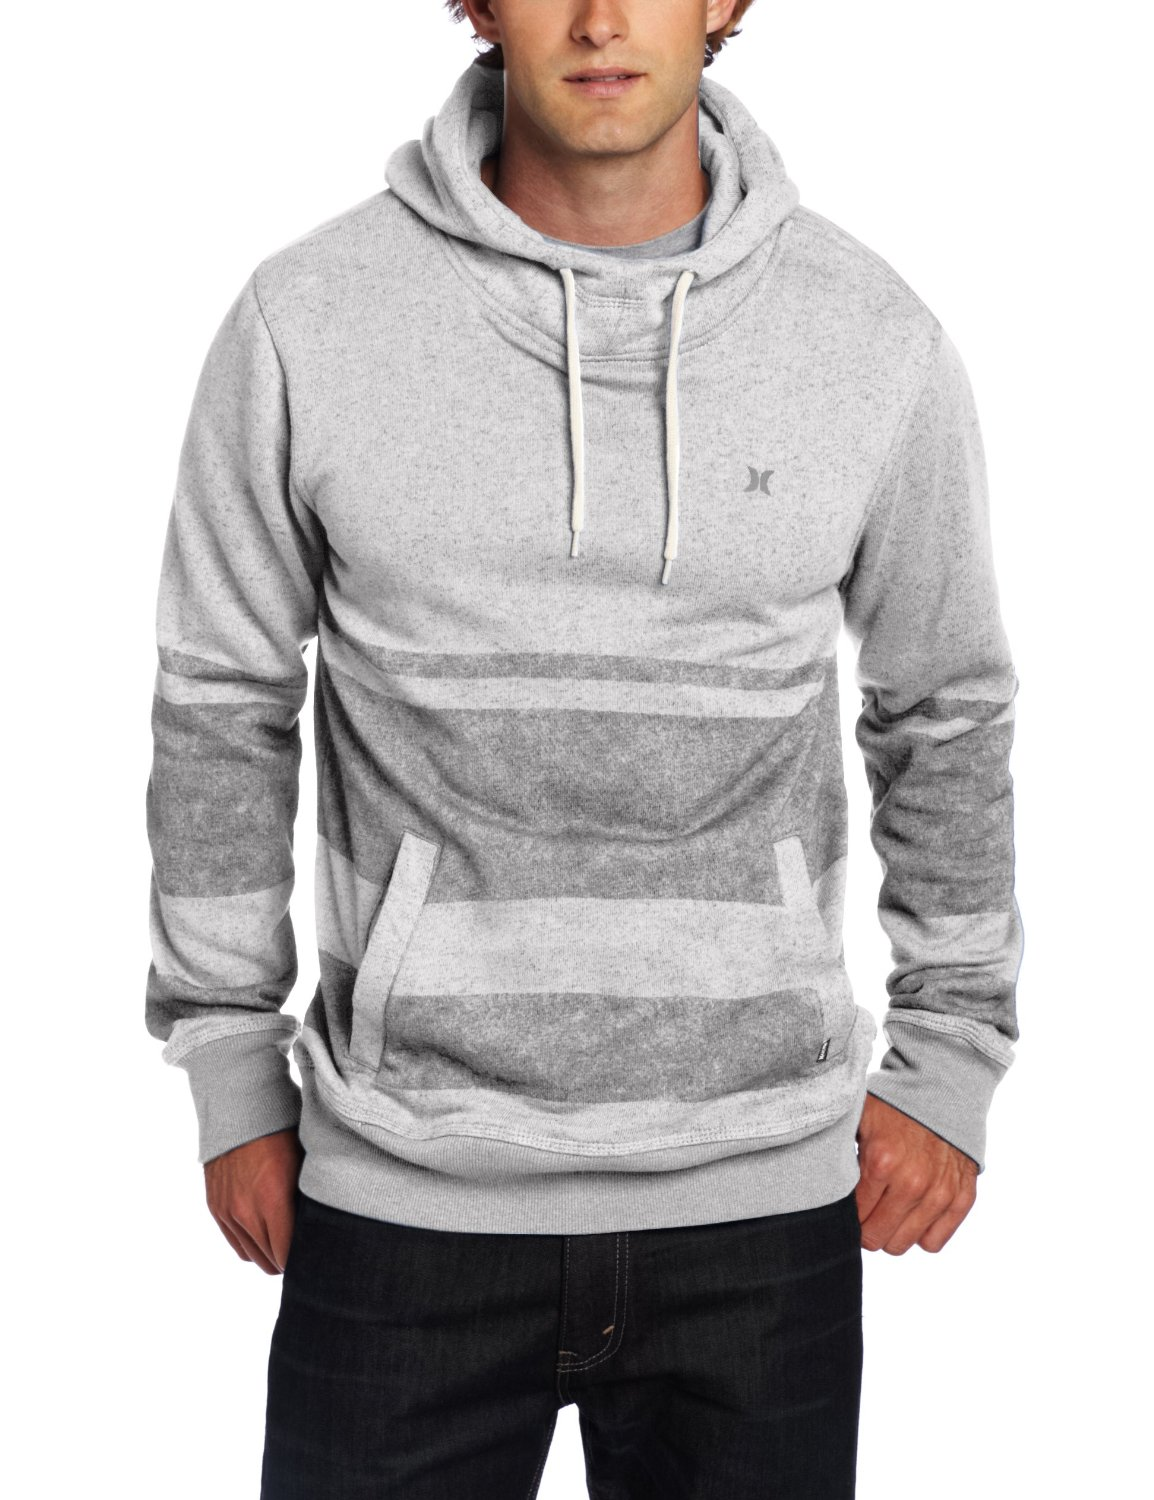 The best type of hoodie to wear in those situations is one made of fabrics that are nylon or nylon blends. For cooler climates or light warmth, buying a cotton and polyester blend works well. In addition, for these situations, traditional fleece is always a popular choice.